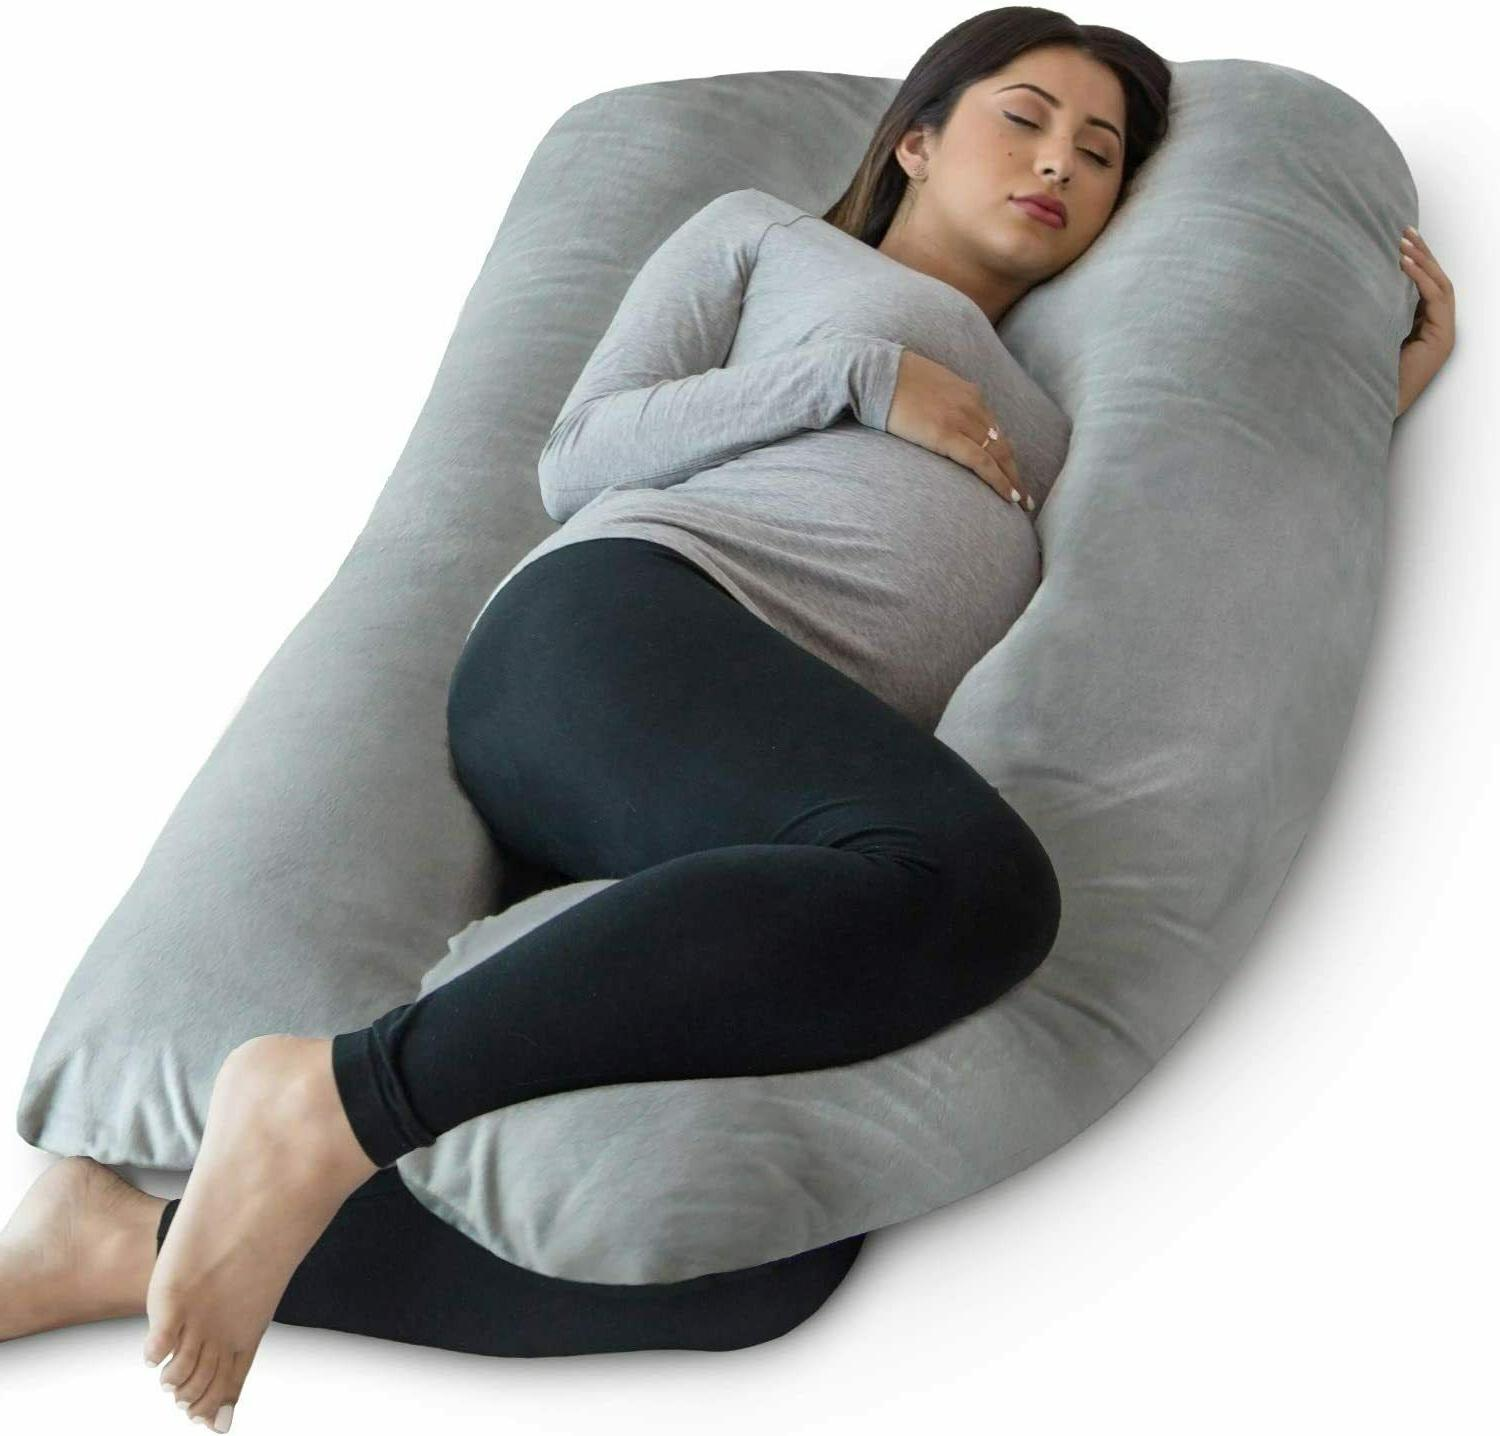 Pregnancy Pillow - Full Body Pillow and Maternity Support fo